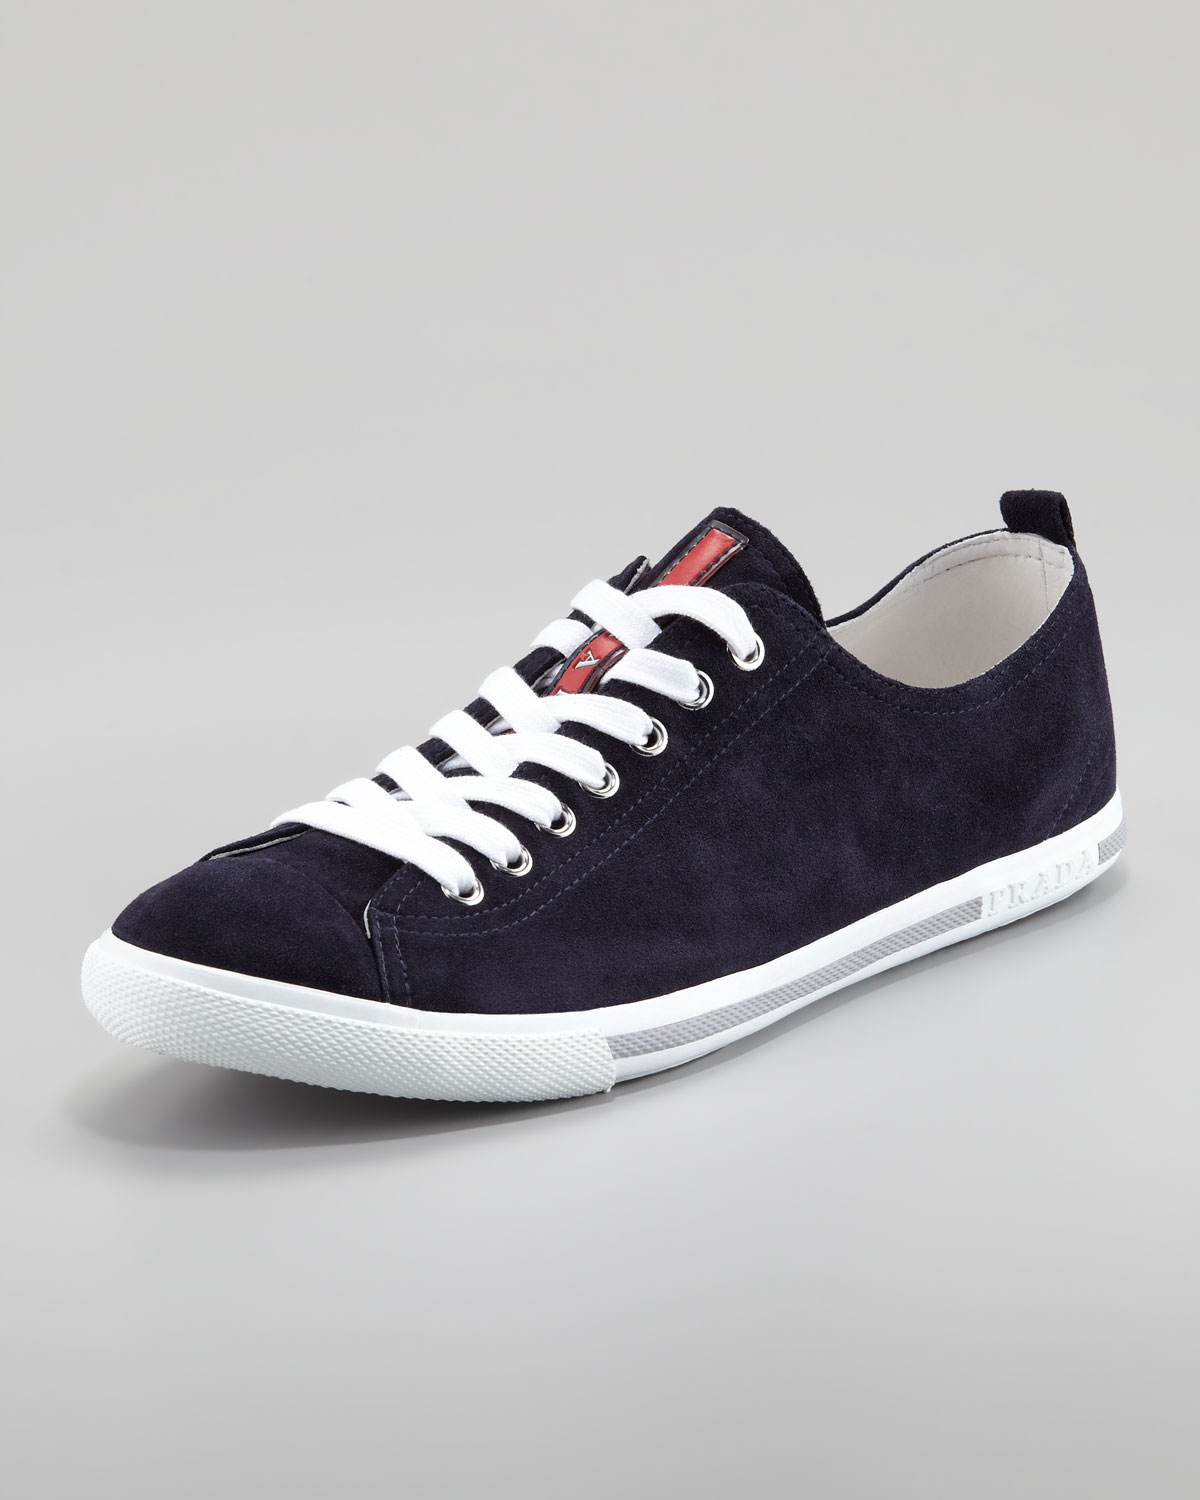 Prada Technical lace-up sneakers cheap sale limited edition discount big sale cheap sale official footlocker pictures sale online outlet amazon 96JgVjKncc